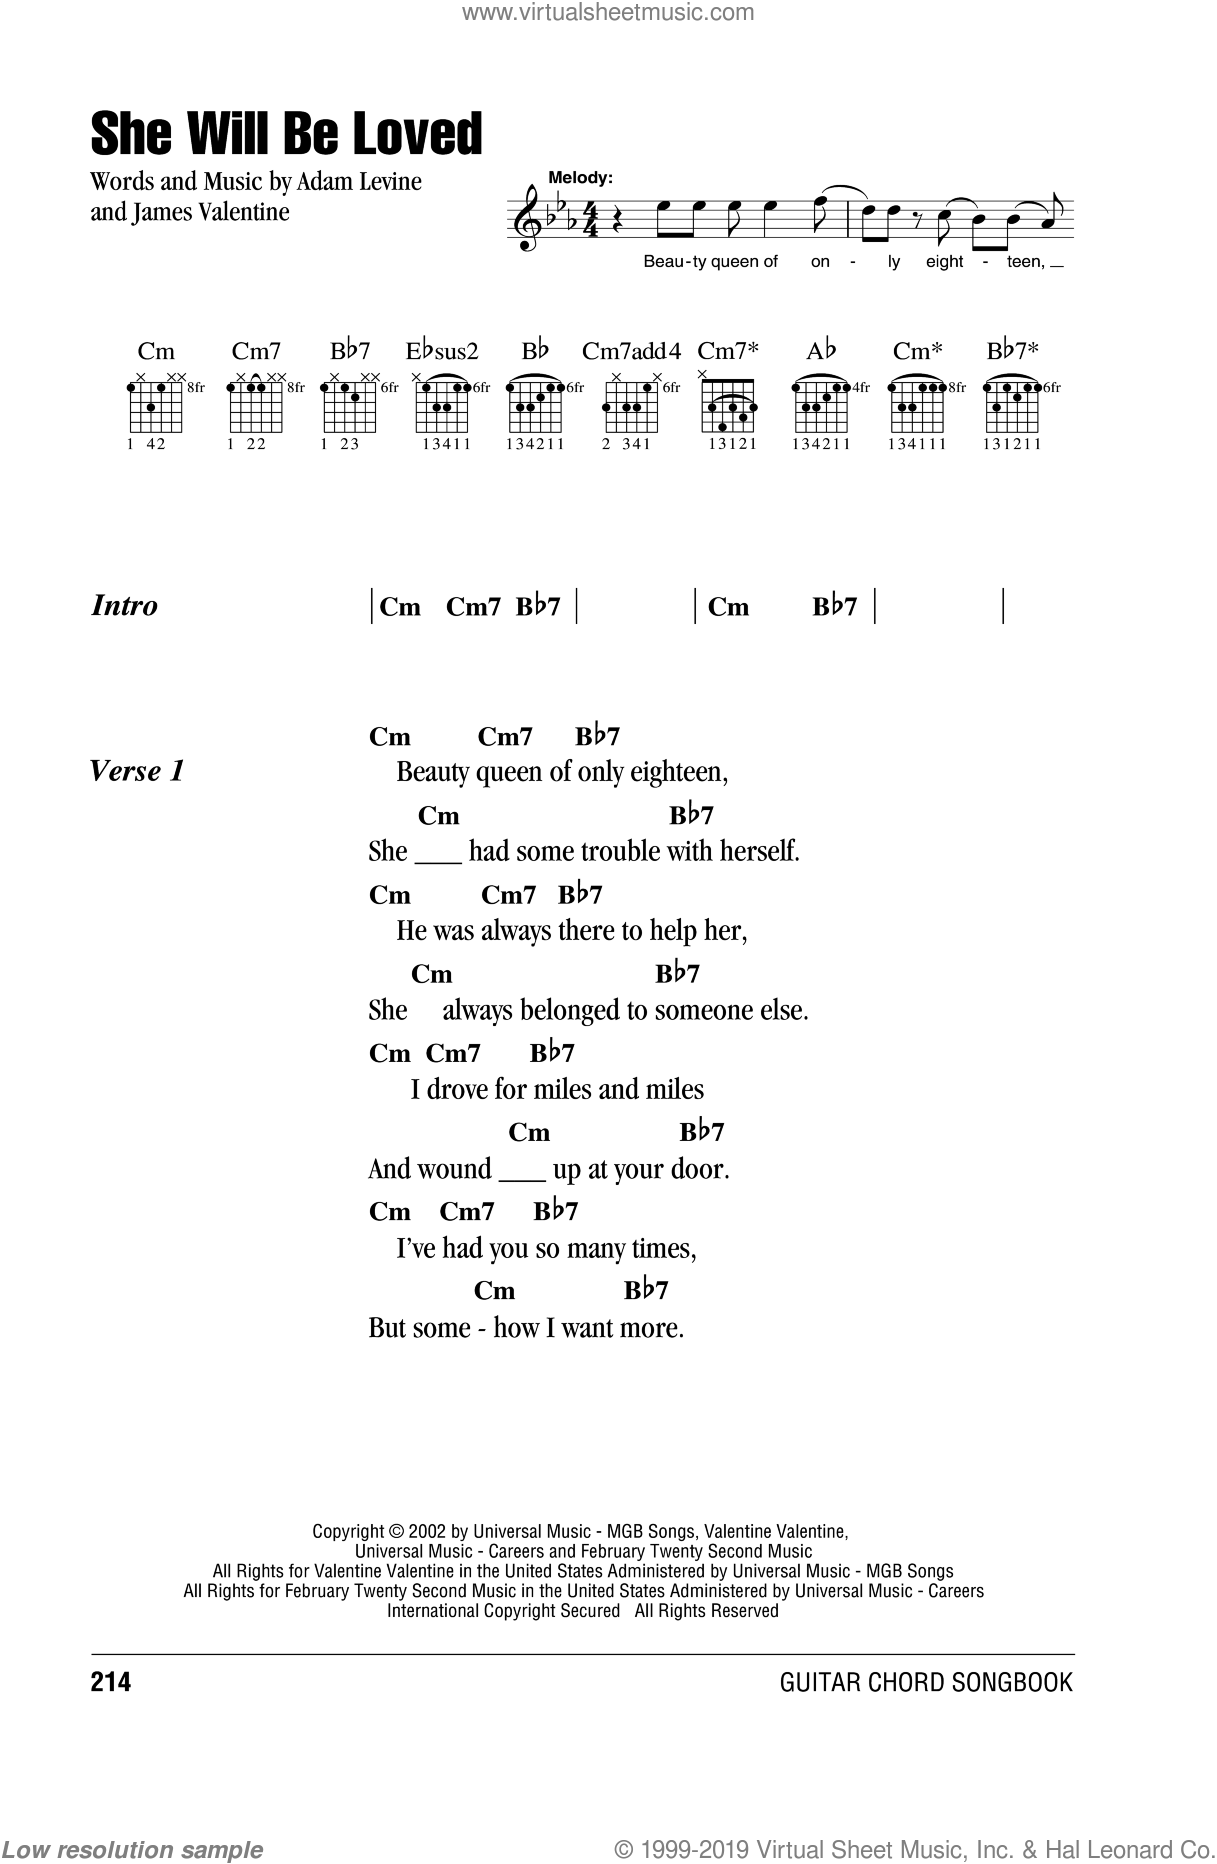 She Will Be Loved sheet music for guitar (chords) by Maroon 5, Adam Levine and James Valentine, intermediate skill level